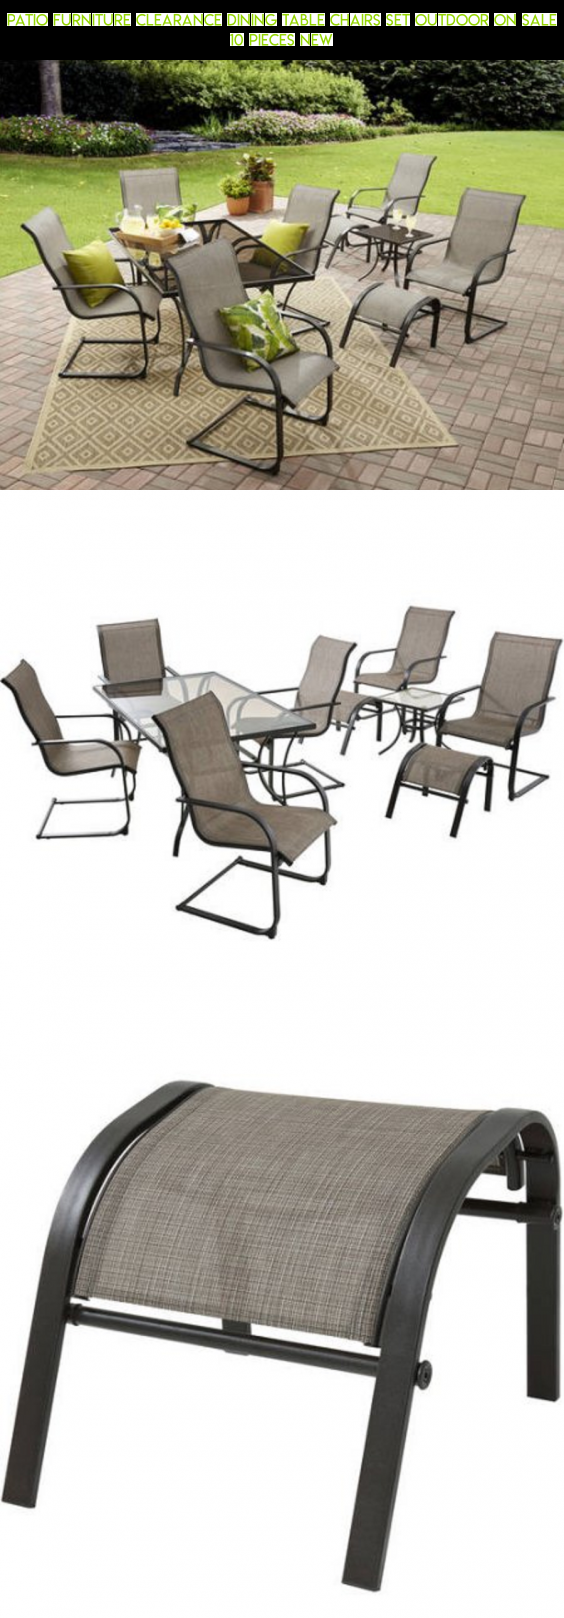 Patio Furniture Clearance Dining Table Chairs Set Outdoor Sale